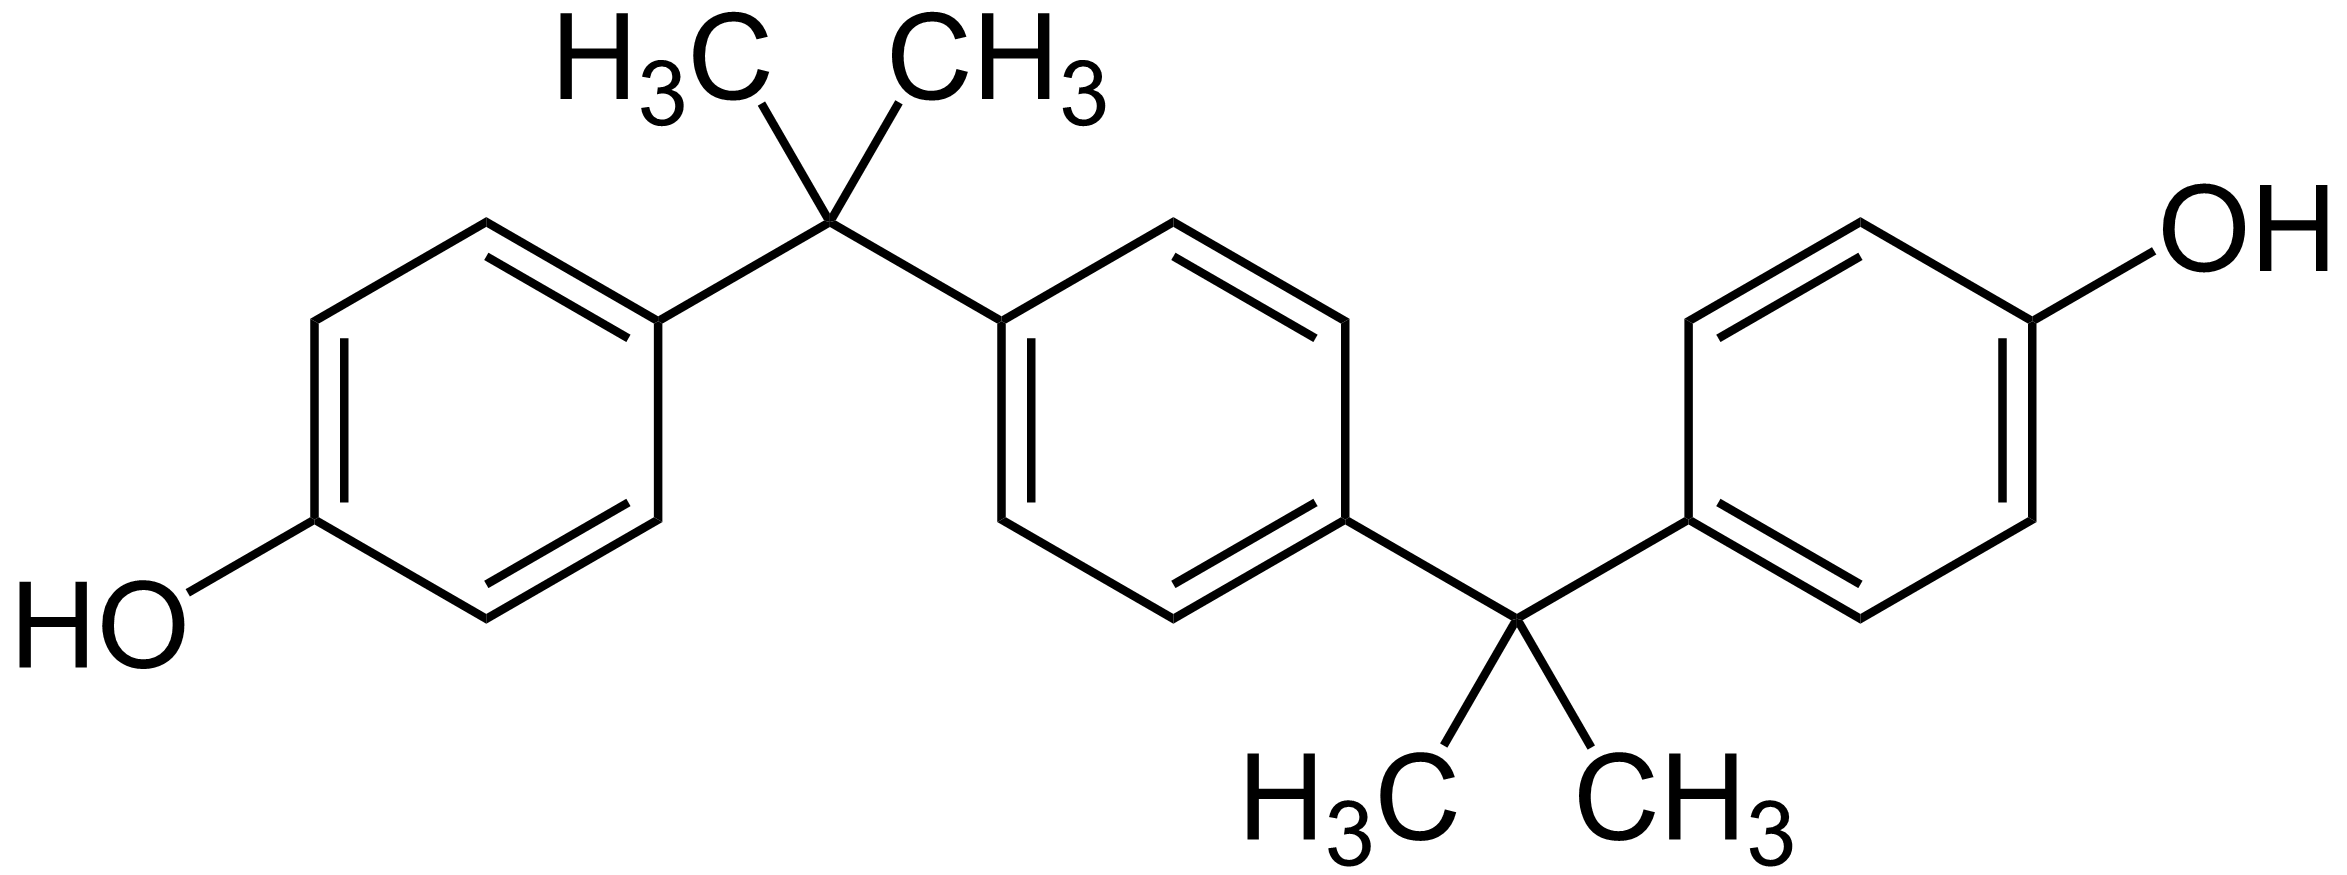 a chemical called bisphenol a Unlike bisphenol a, bisphenol f is a mixture of isomers rather than a discreet compound bisphenol f can be subjected to a condensation process in which a polymeric resin called novalac is produced the novolac can be reacted with epichlorohydrin to produce a polyglcidylether and these are called novolac glycidyl ethers (noge.